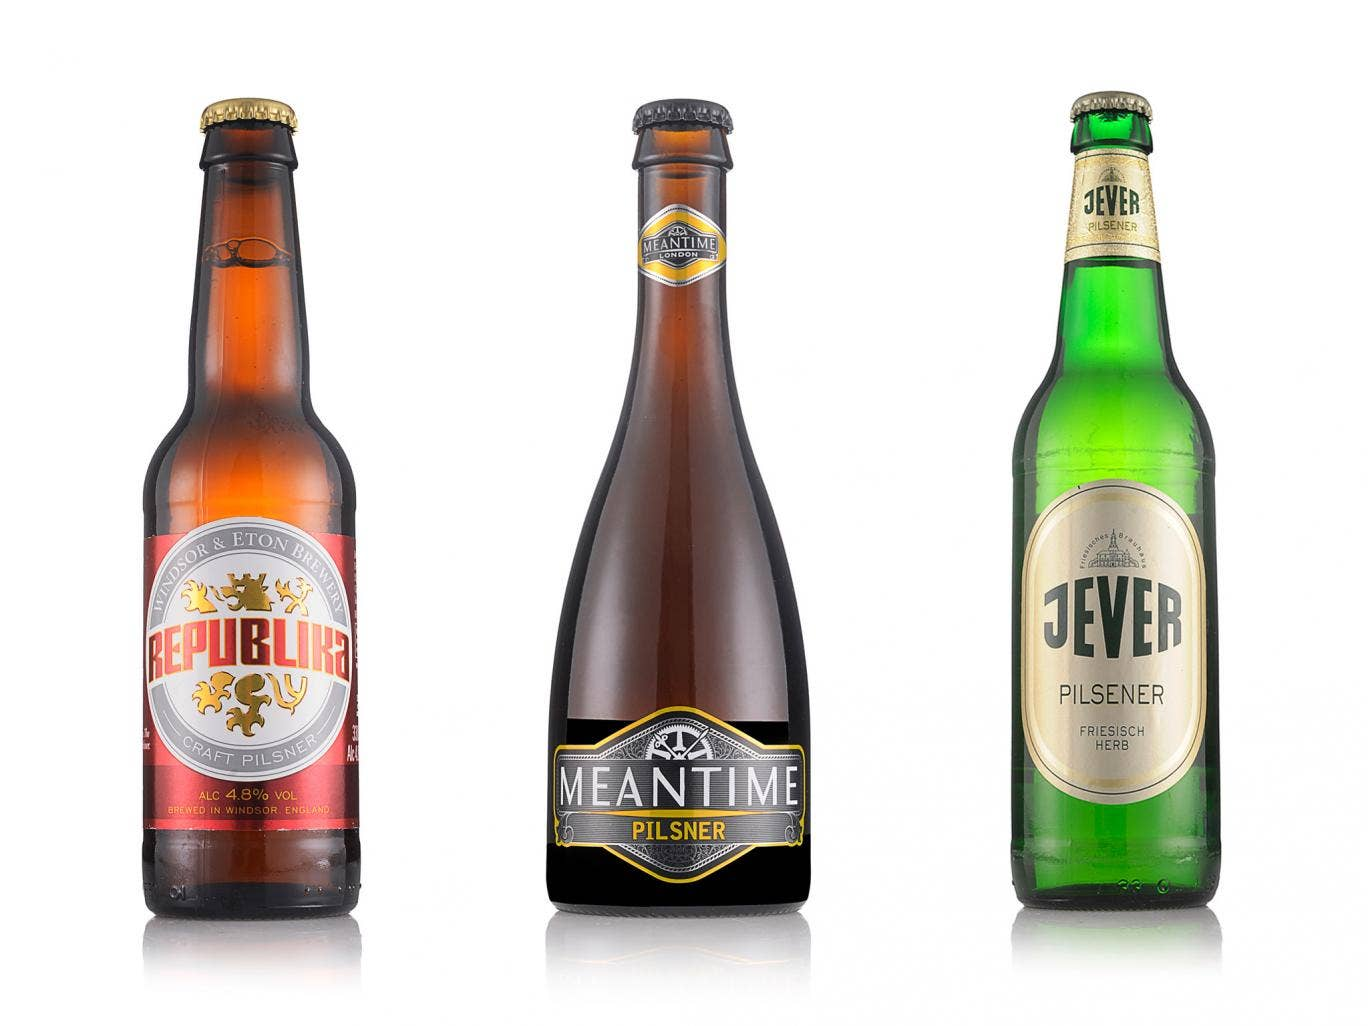 Three to try: Windsor & Eton Republika, Meantime Pilsner and Jever